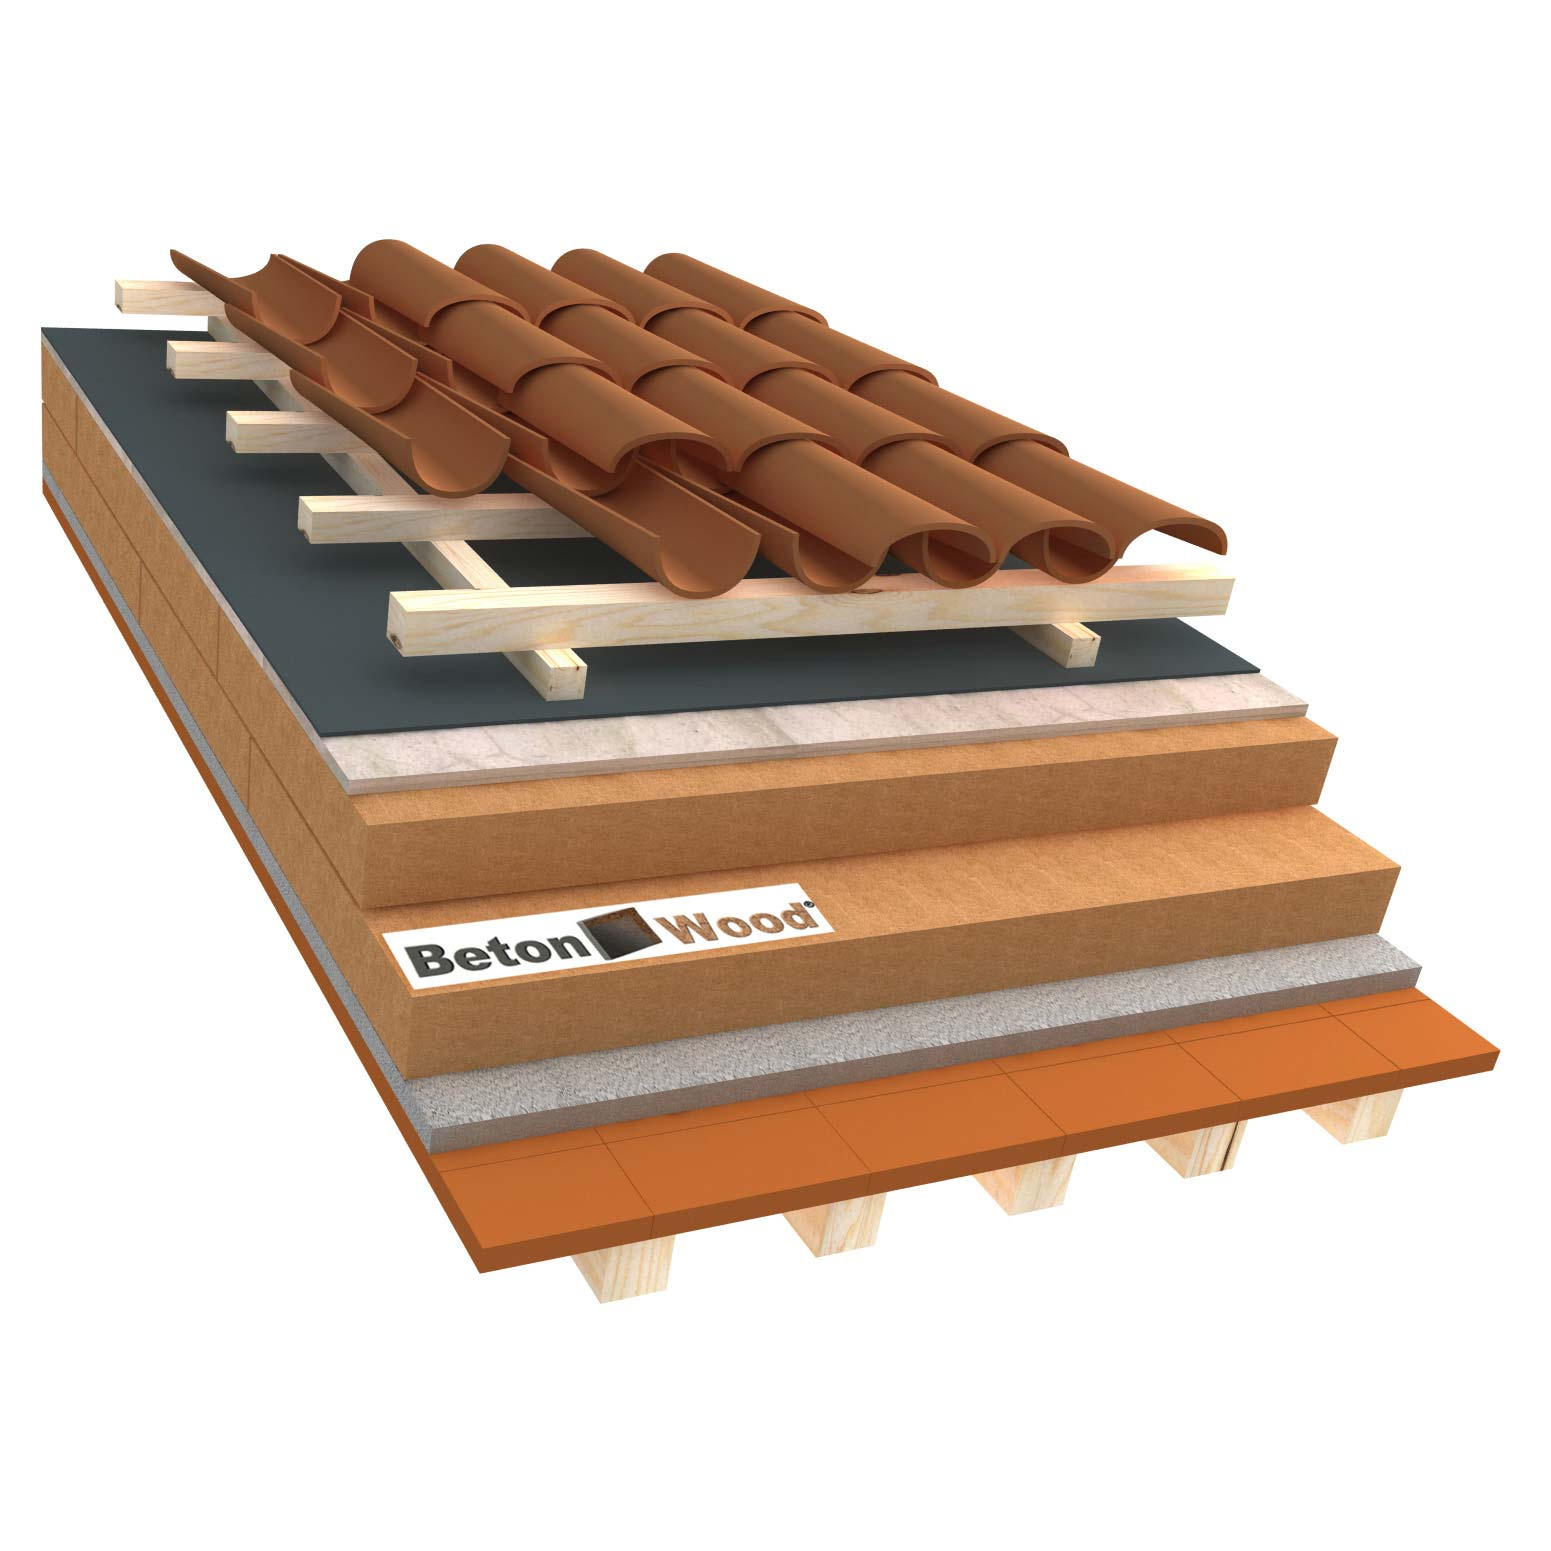 Ventilated roof with fiber wood Special and cement bonded particle boards on terracotta tiles